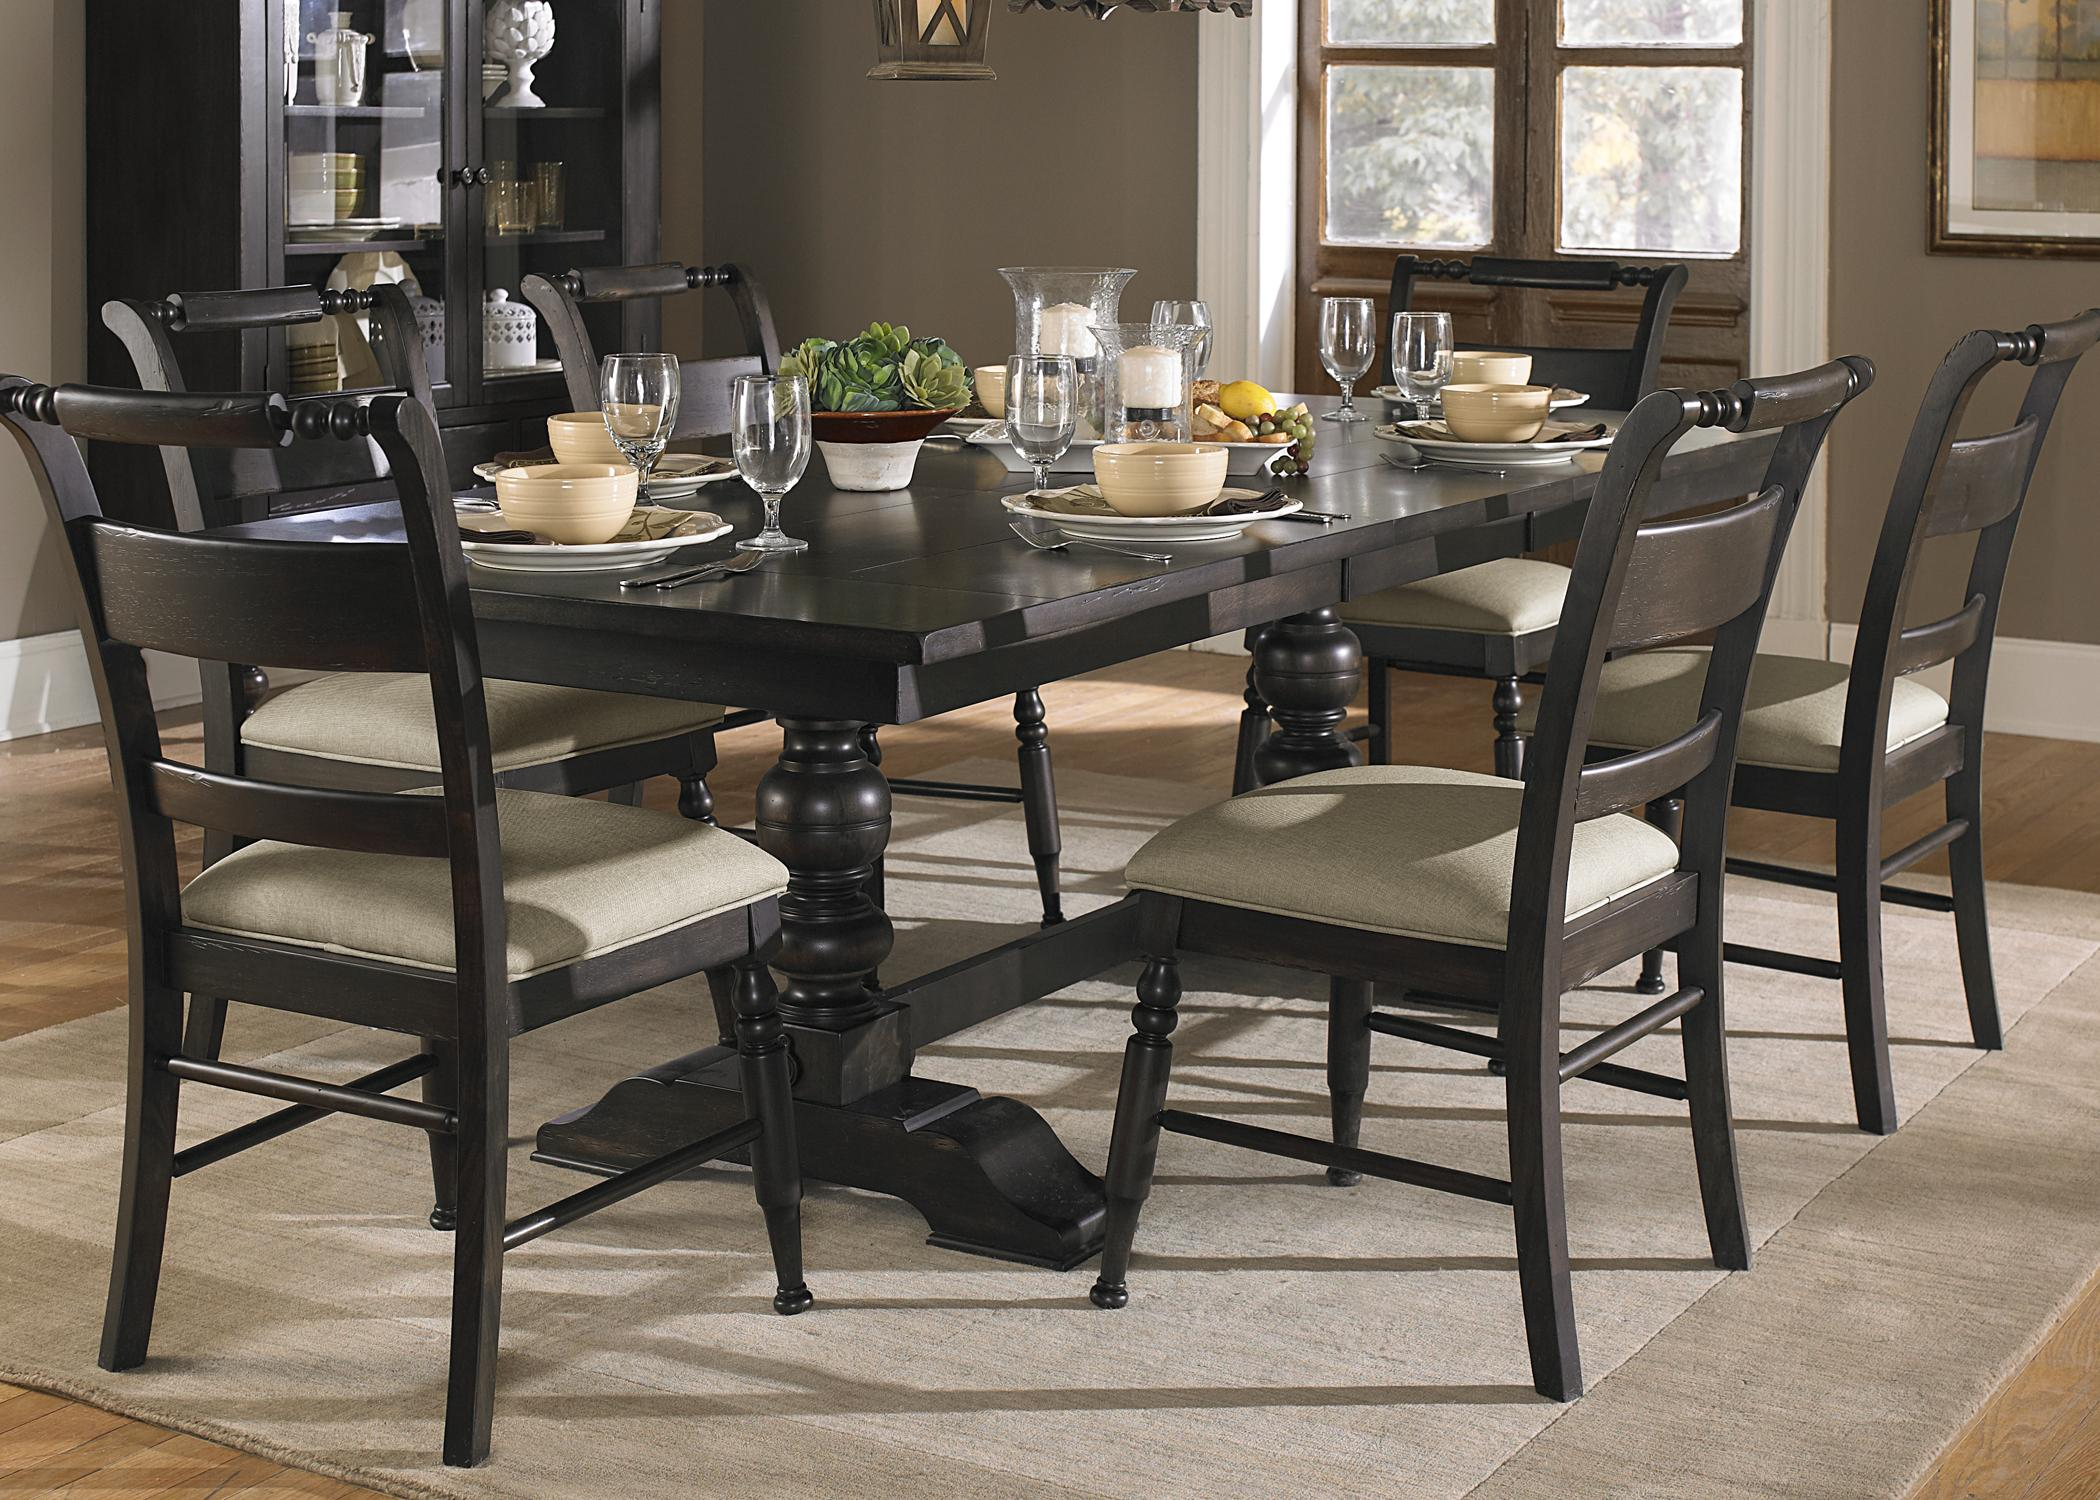 7 Piece Trestle Dining Room Table Set : cheap dining room table sets - Pezcame.Com